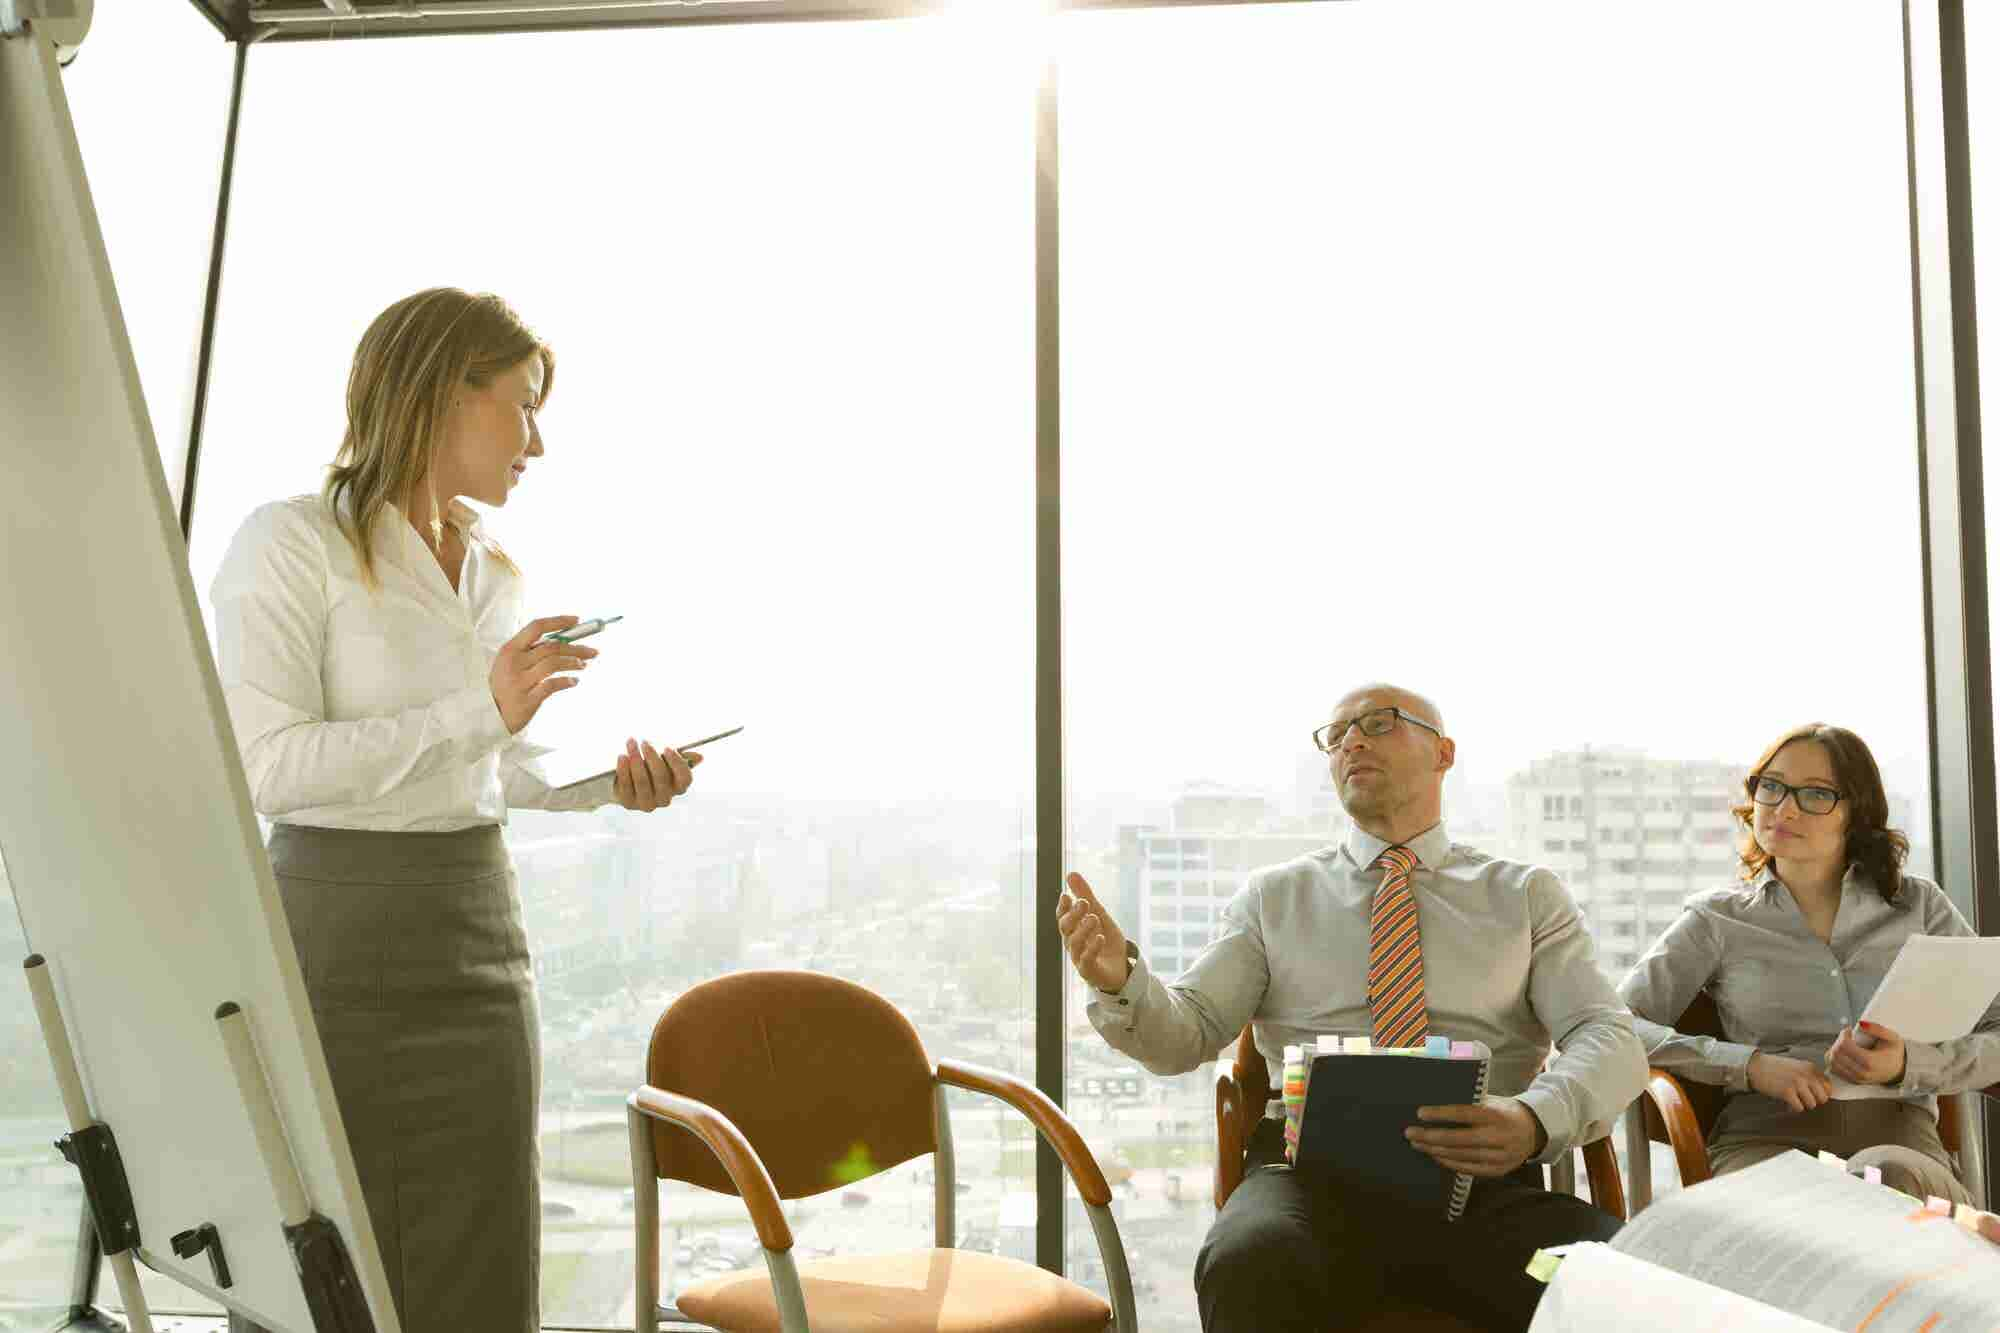 Advice For Employees: There's a Limit To Your Complaints